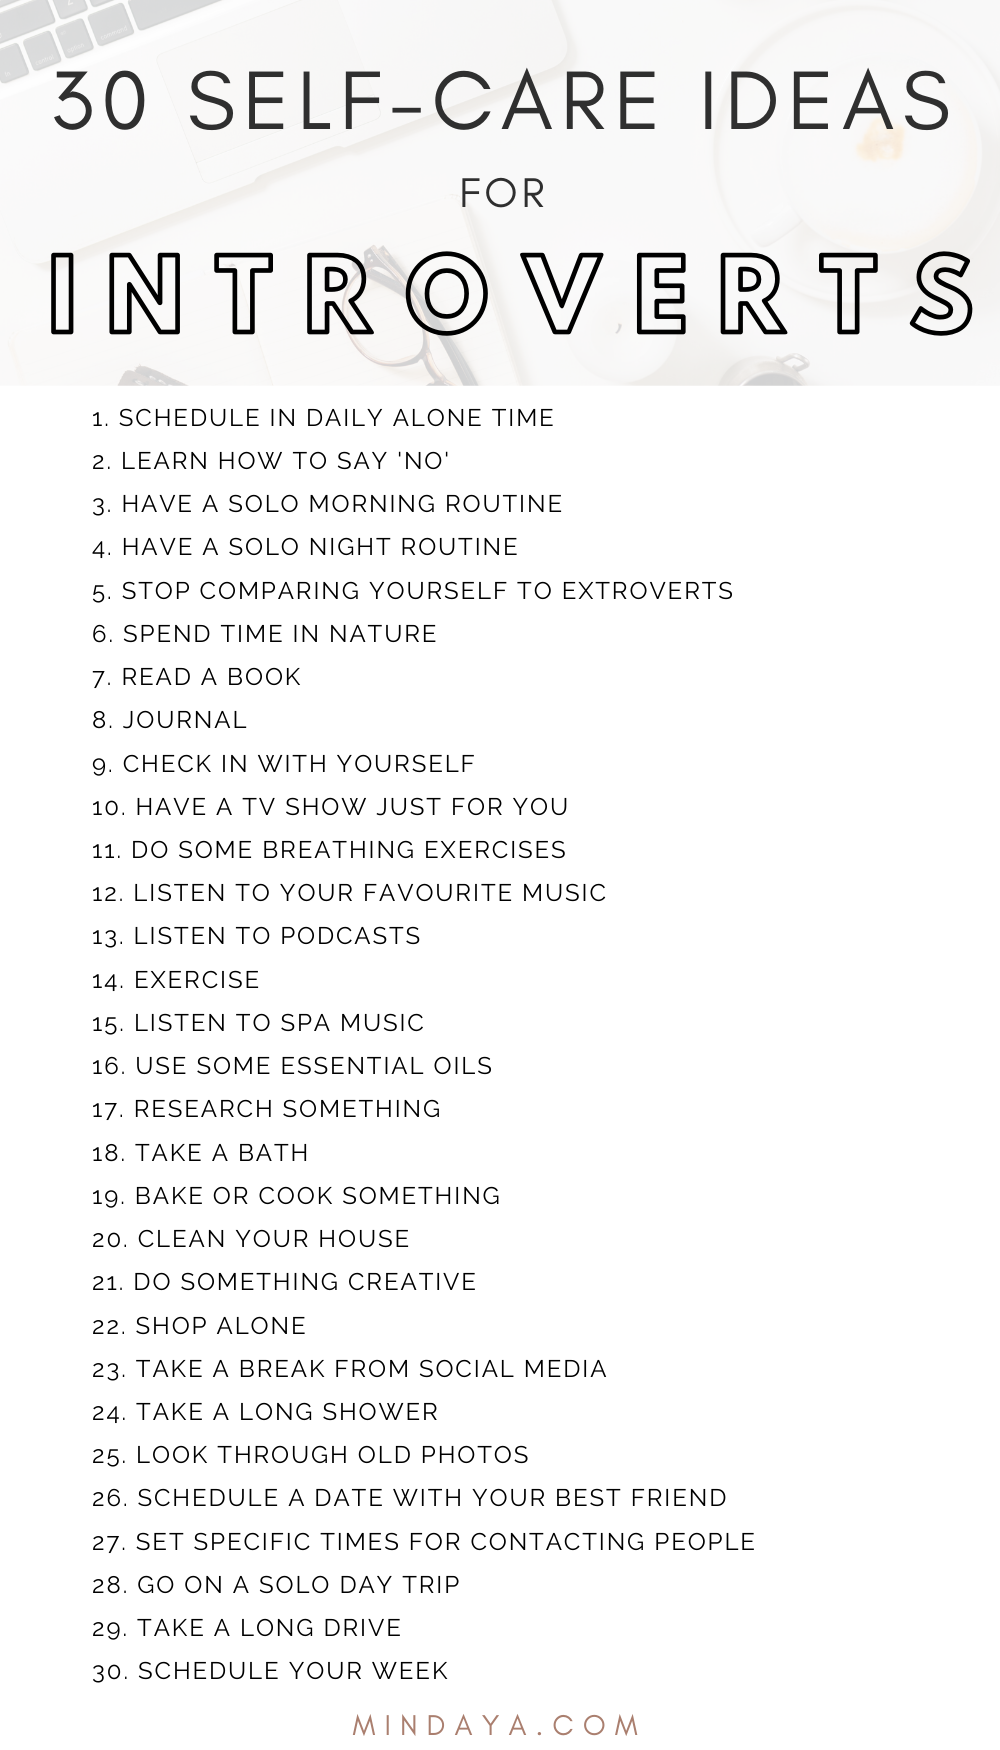 The Ultimate List of Self-Care for Introverts | Mindaya